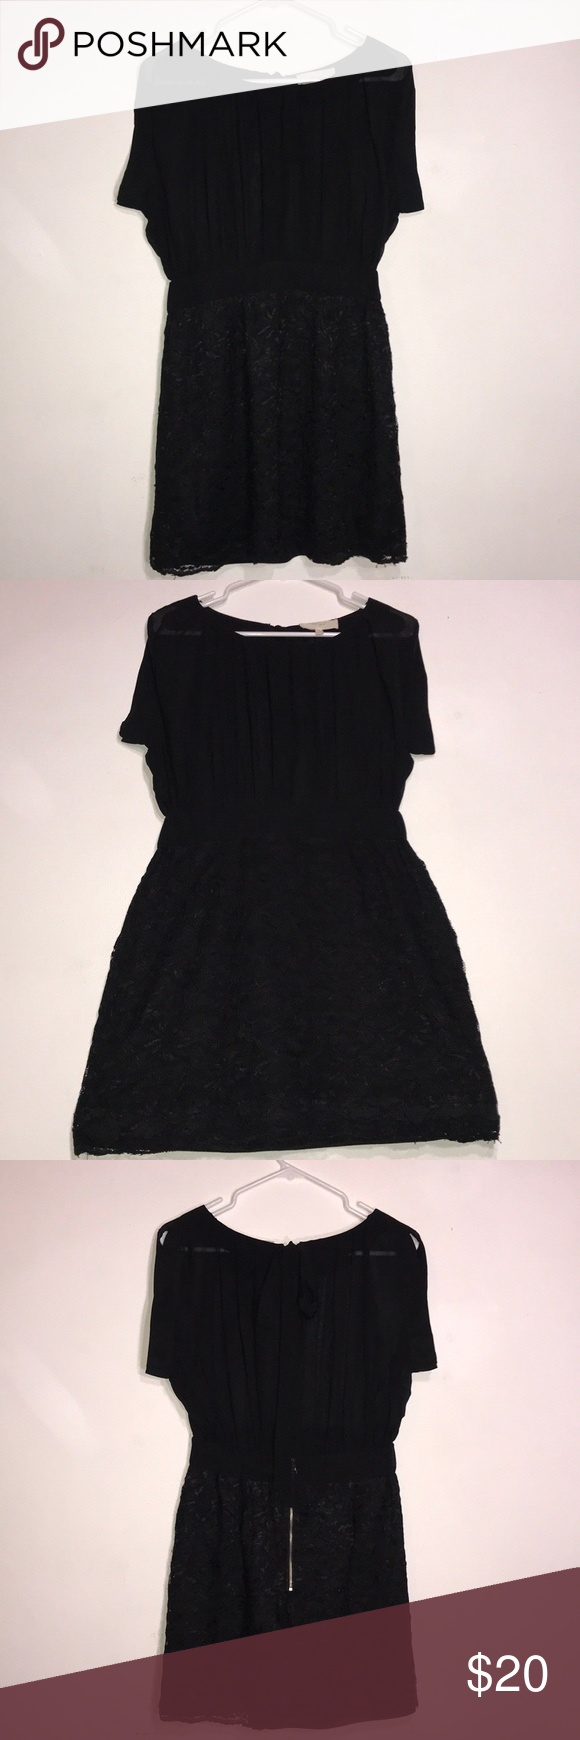 Last April Sheer Top Black Lace Dress Purchased From Standard Style Boutique By Baldwin Denim Women S Siz Black Sheer Top Couture Dresses Black Lace Dress [ 1740 x 580 Pixel ]